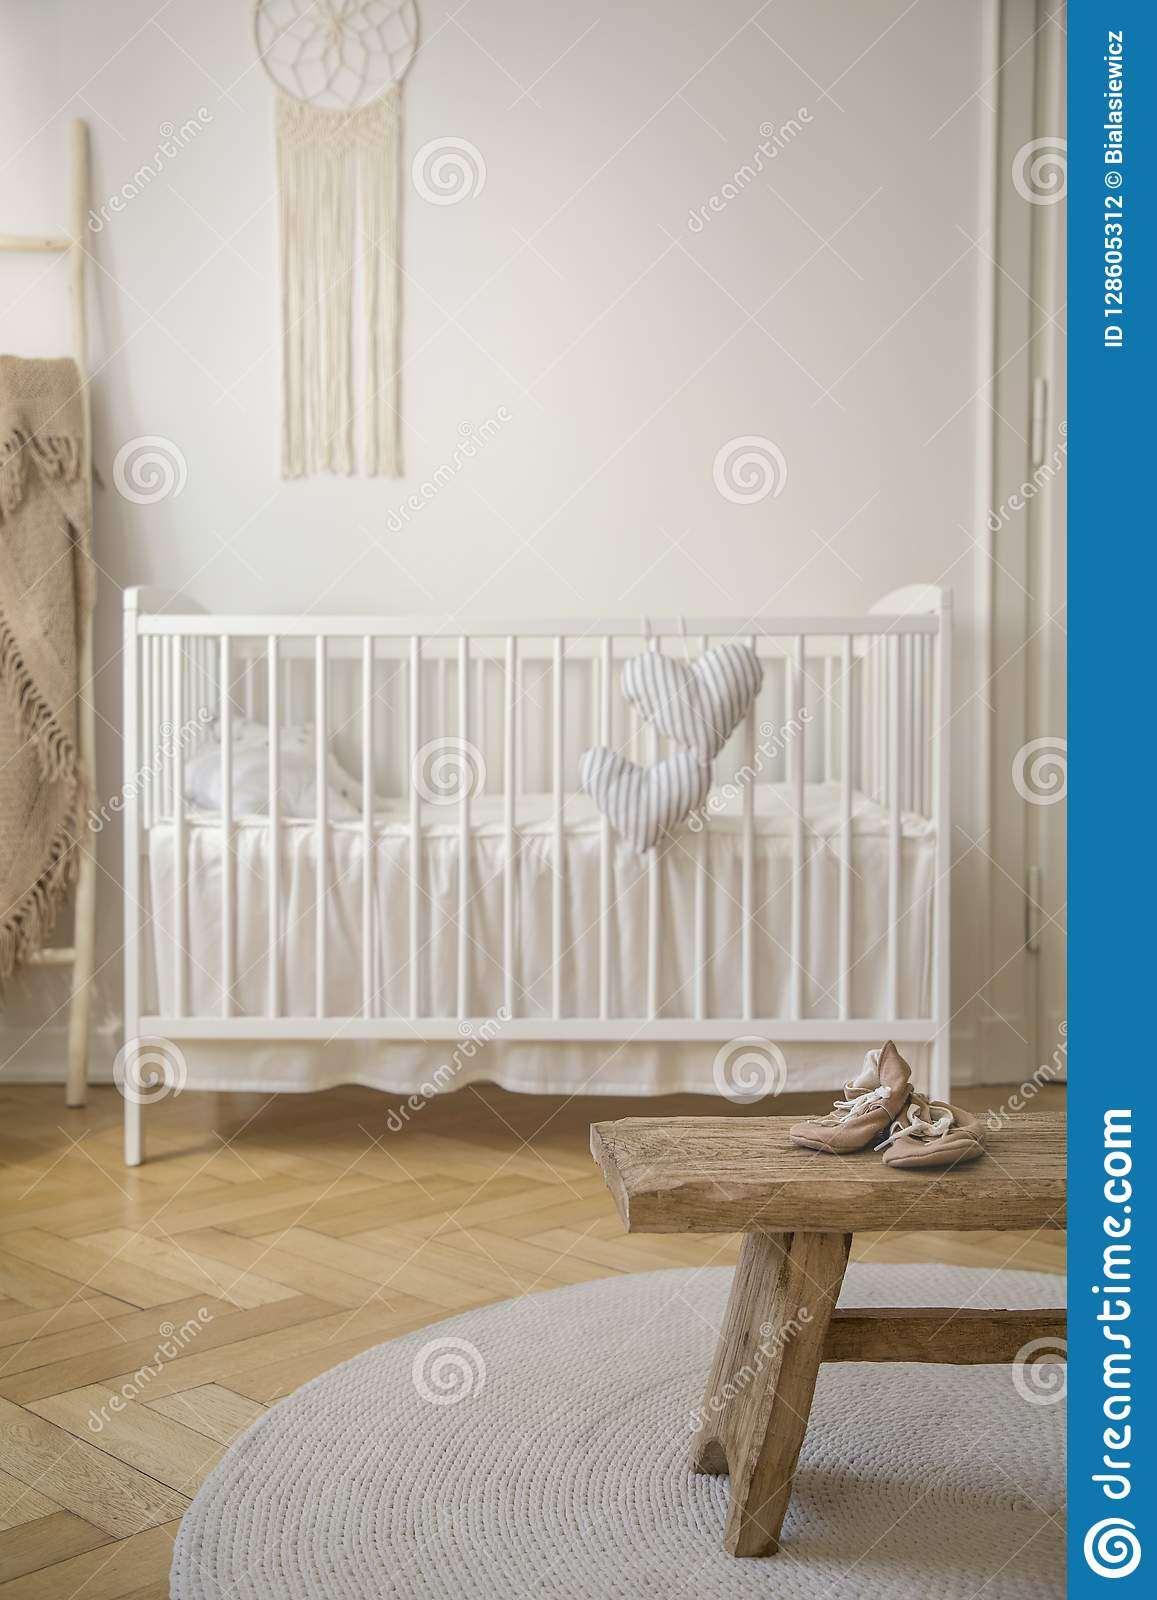 Wooden stool with shoes on round rug in bright baby`s bedroom interior with white cradle